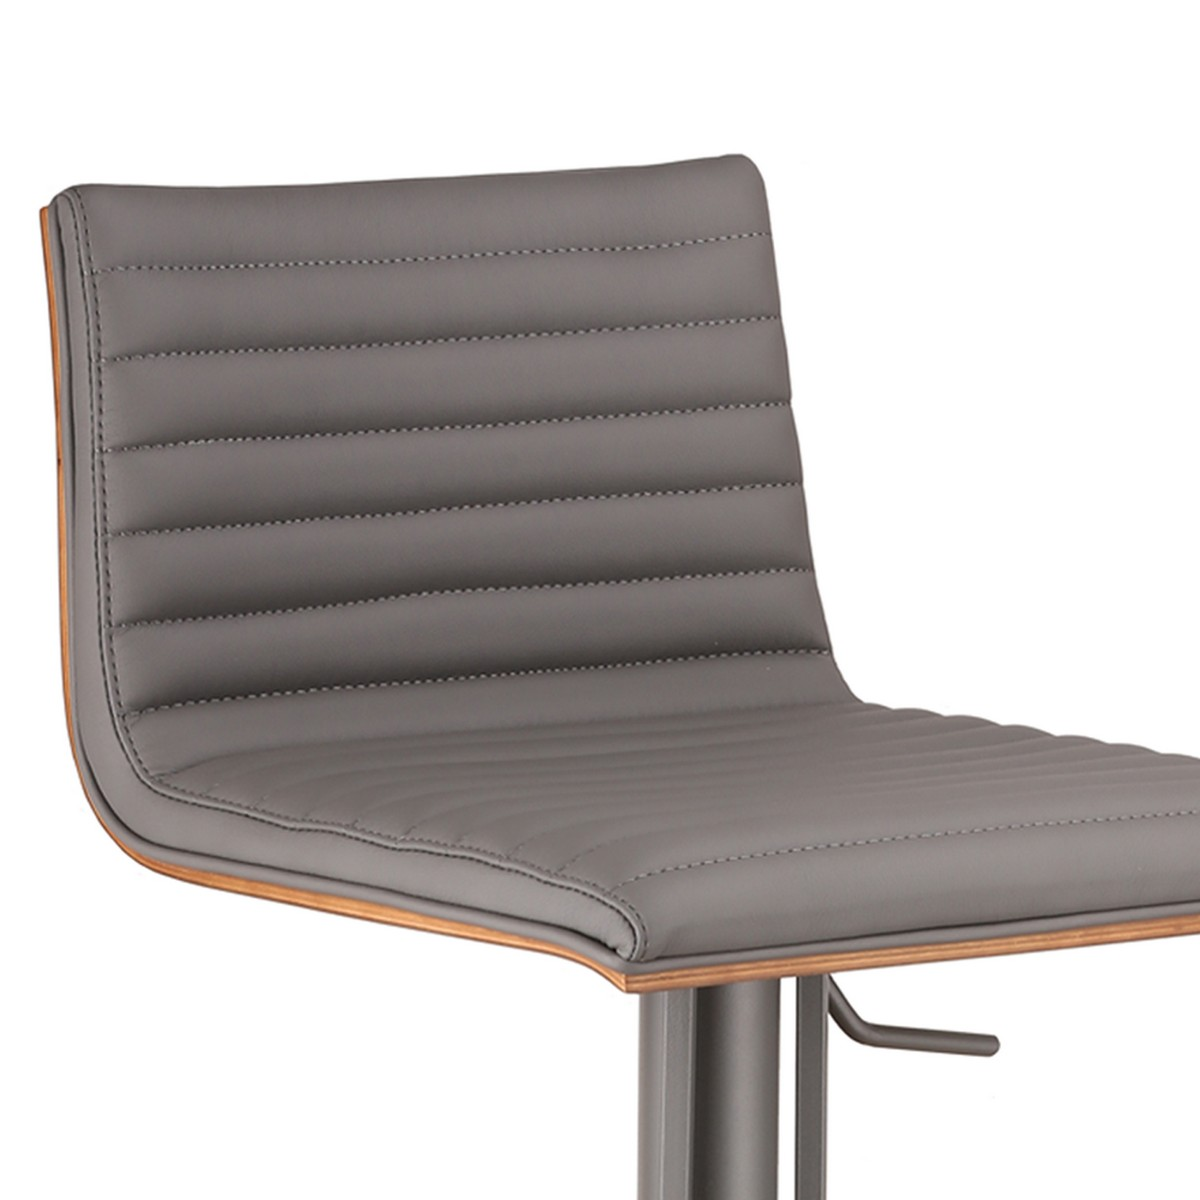 Armen Living Cafe Adjustable Gray Metal Barstool in Gray Leatherette with Walnut Back